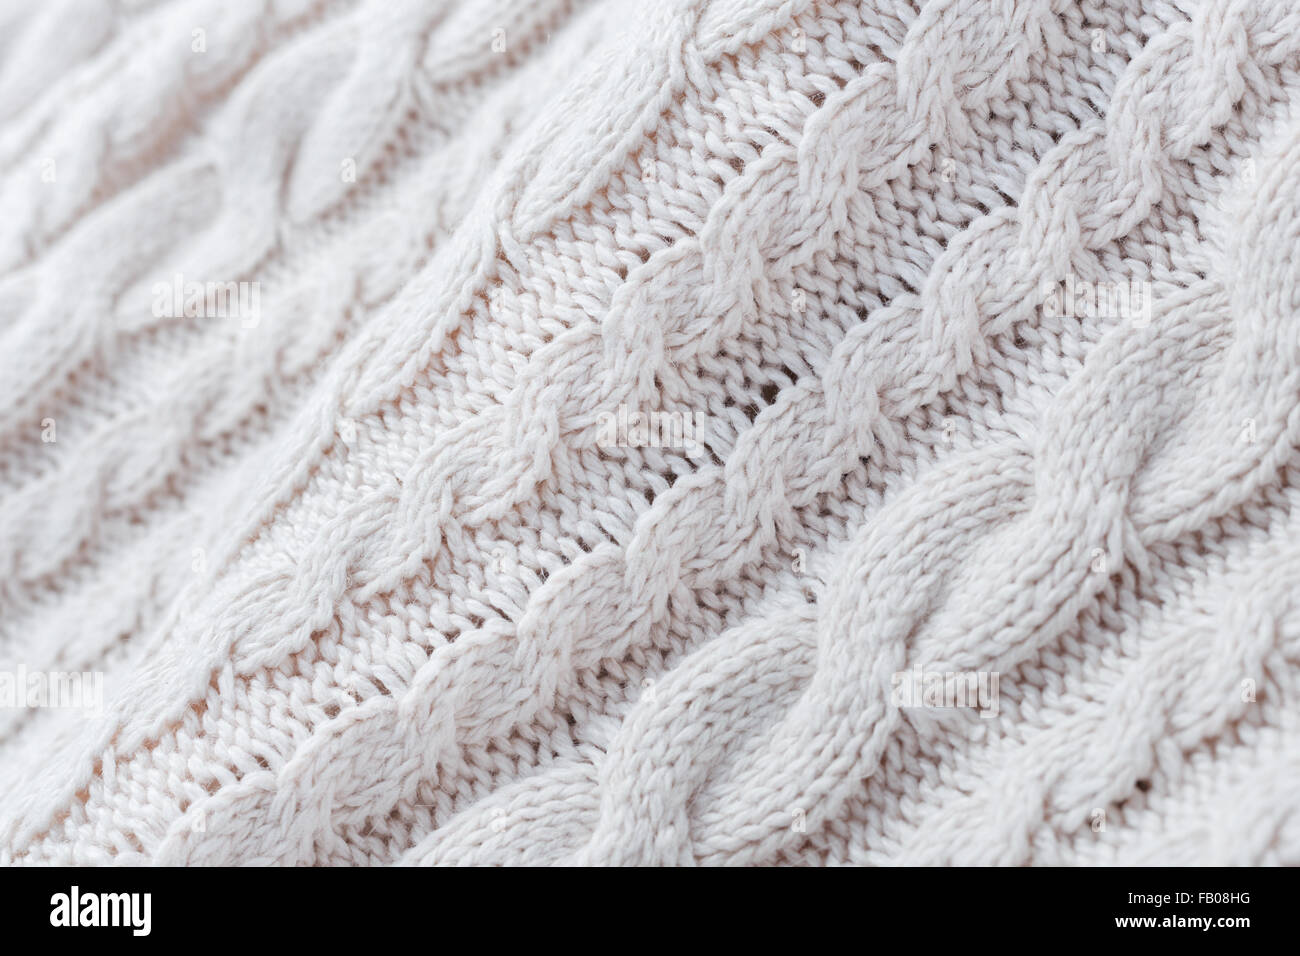 Knitting Background Texture : White knit fabric texture and background stock photo